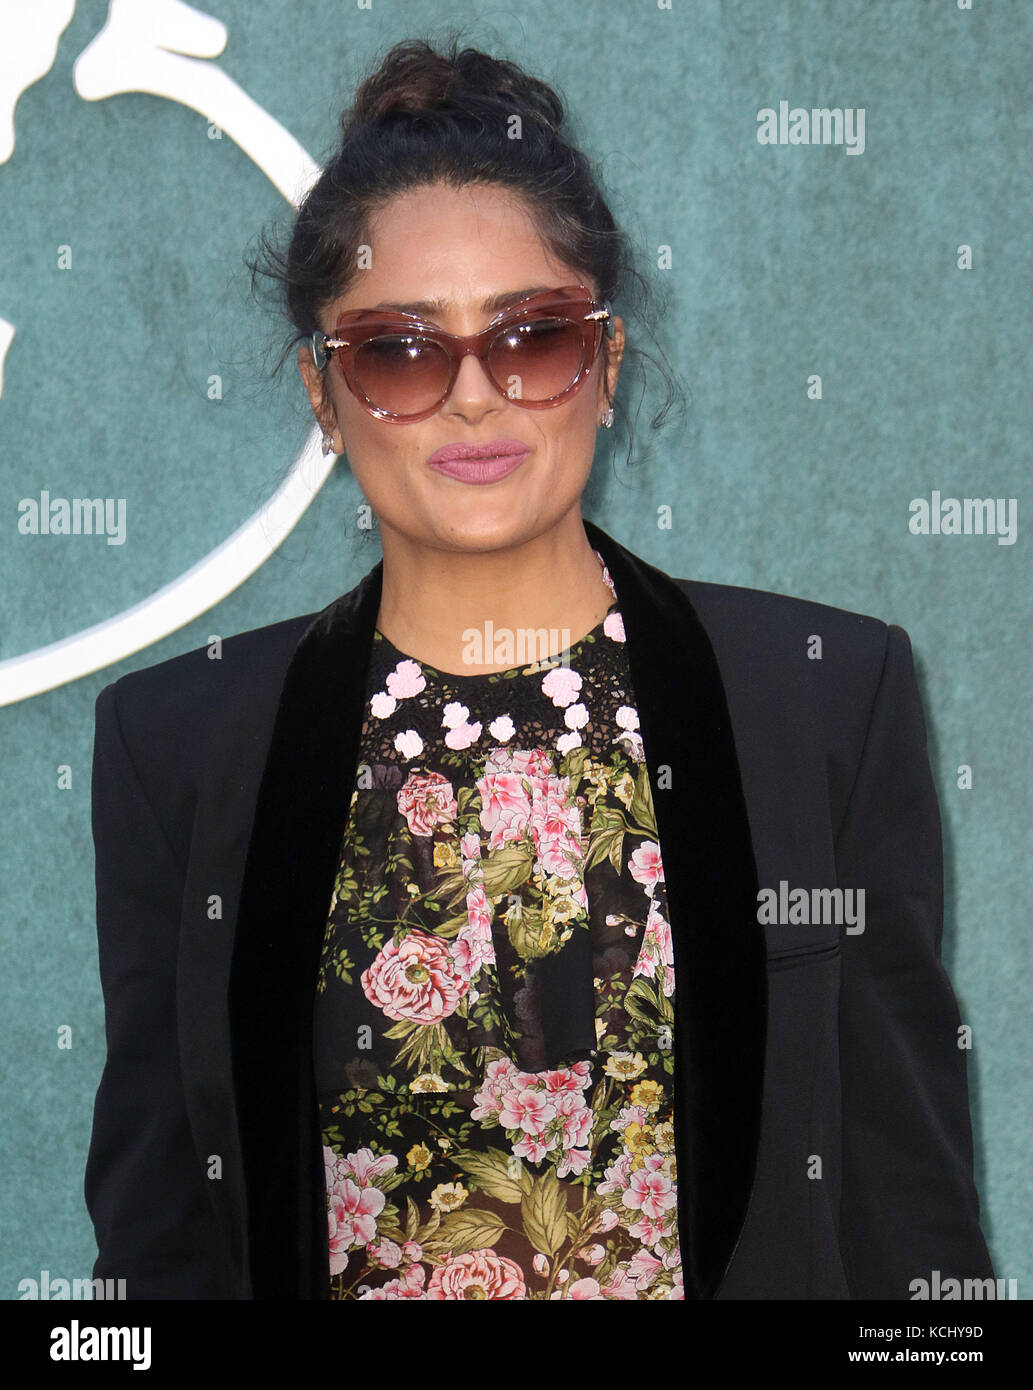 Sep 06, 2017 - Salma Hayek attending 'Mother!' UK Premiere, Odeon Leicester Square in London, England, UK - Stock Image